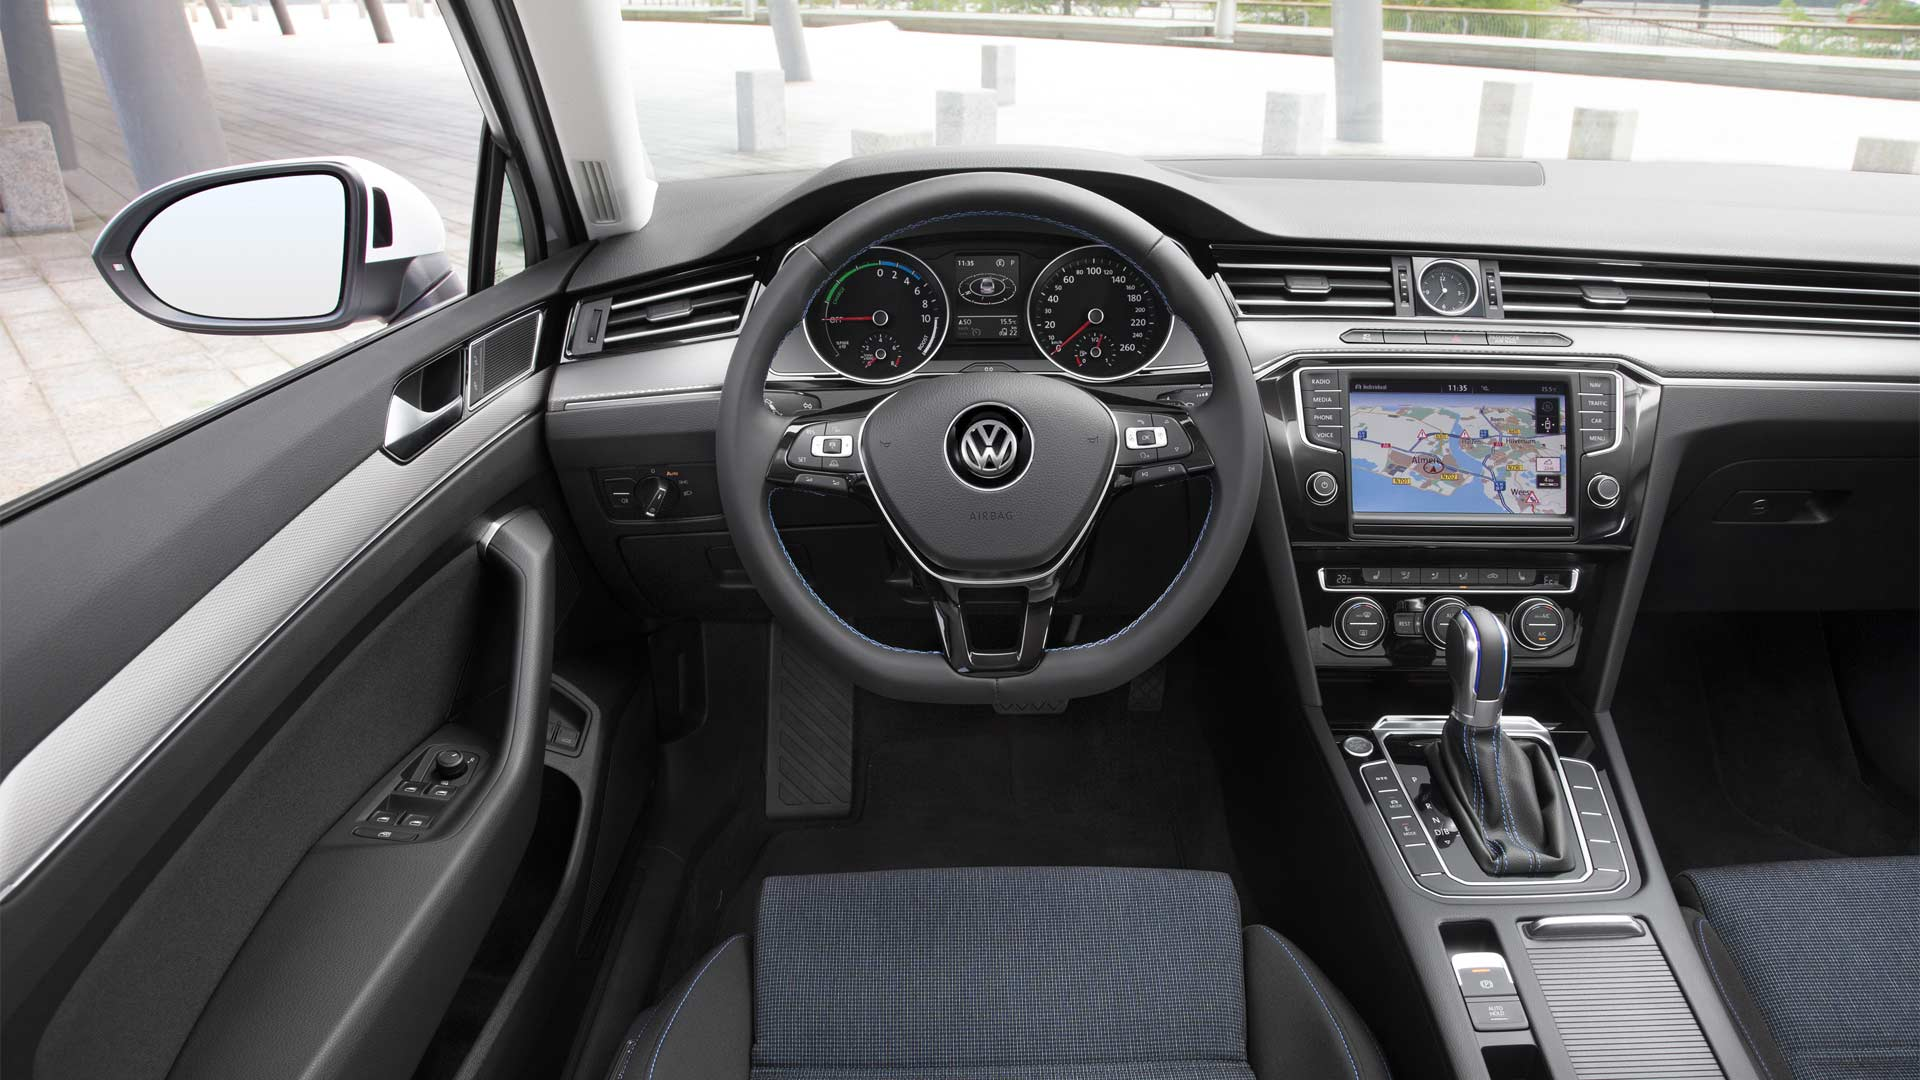 8th-generation-Volkswagen-Passat-interior